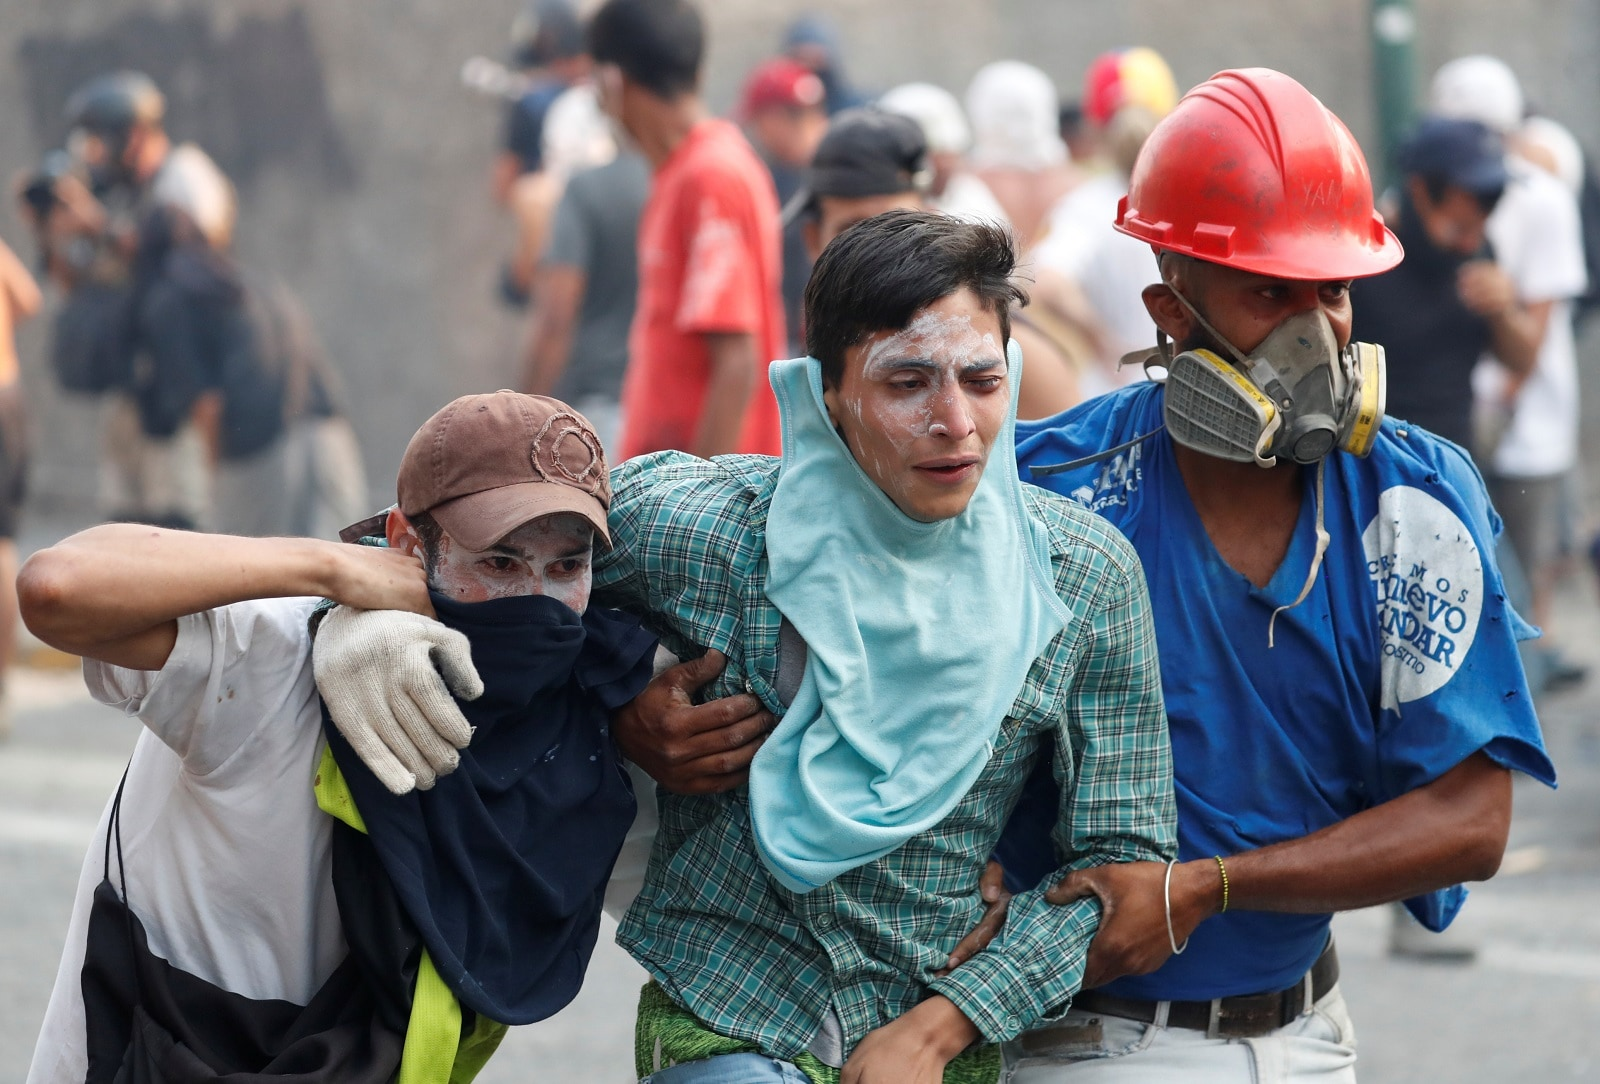 An injured demonstrator is assisted by others during clashes with government security forces in Caracas, Venezuela April 30, 2019. REUTERS/Carlos Garcia Rawlins